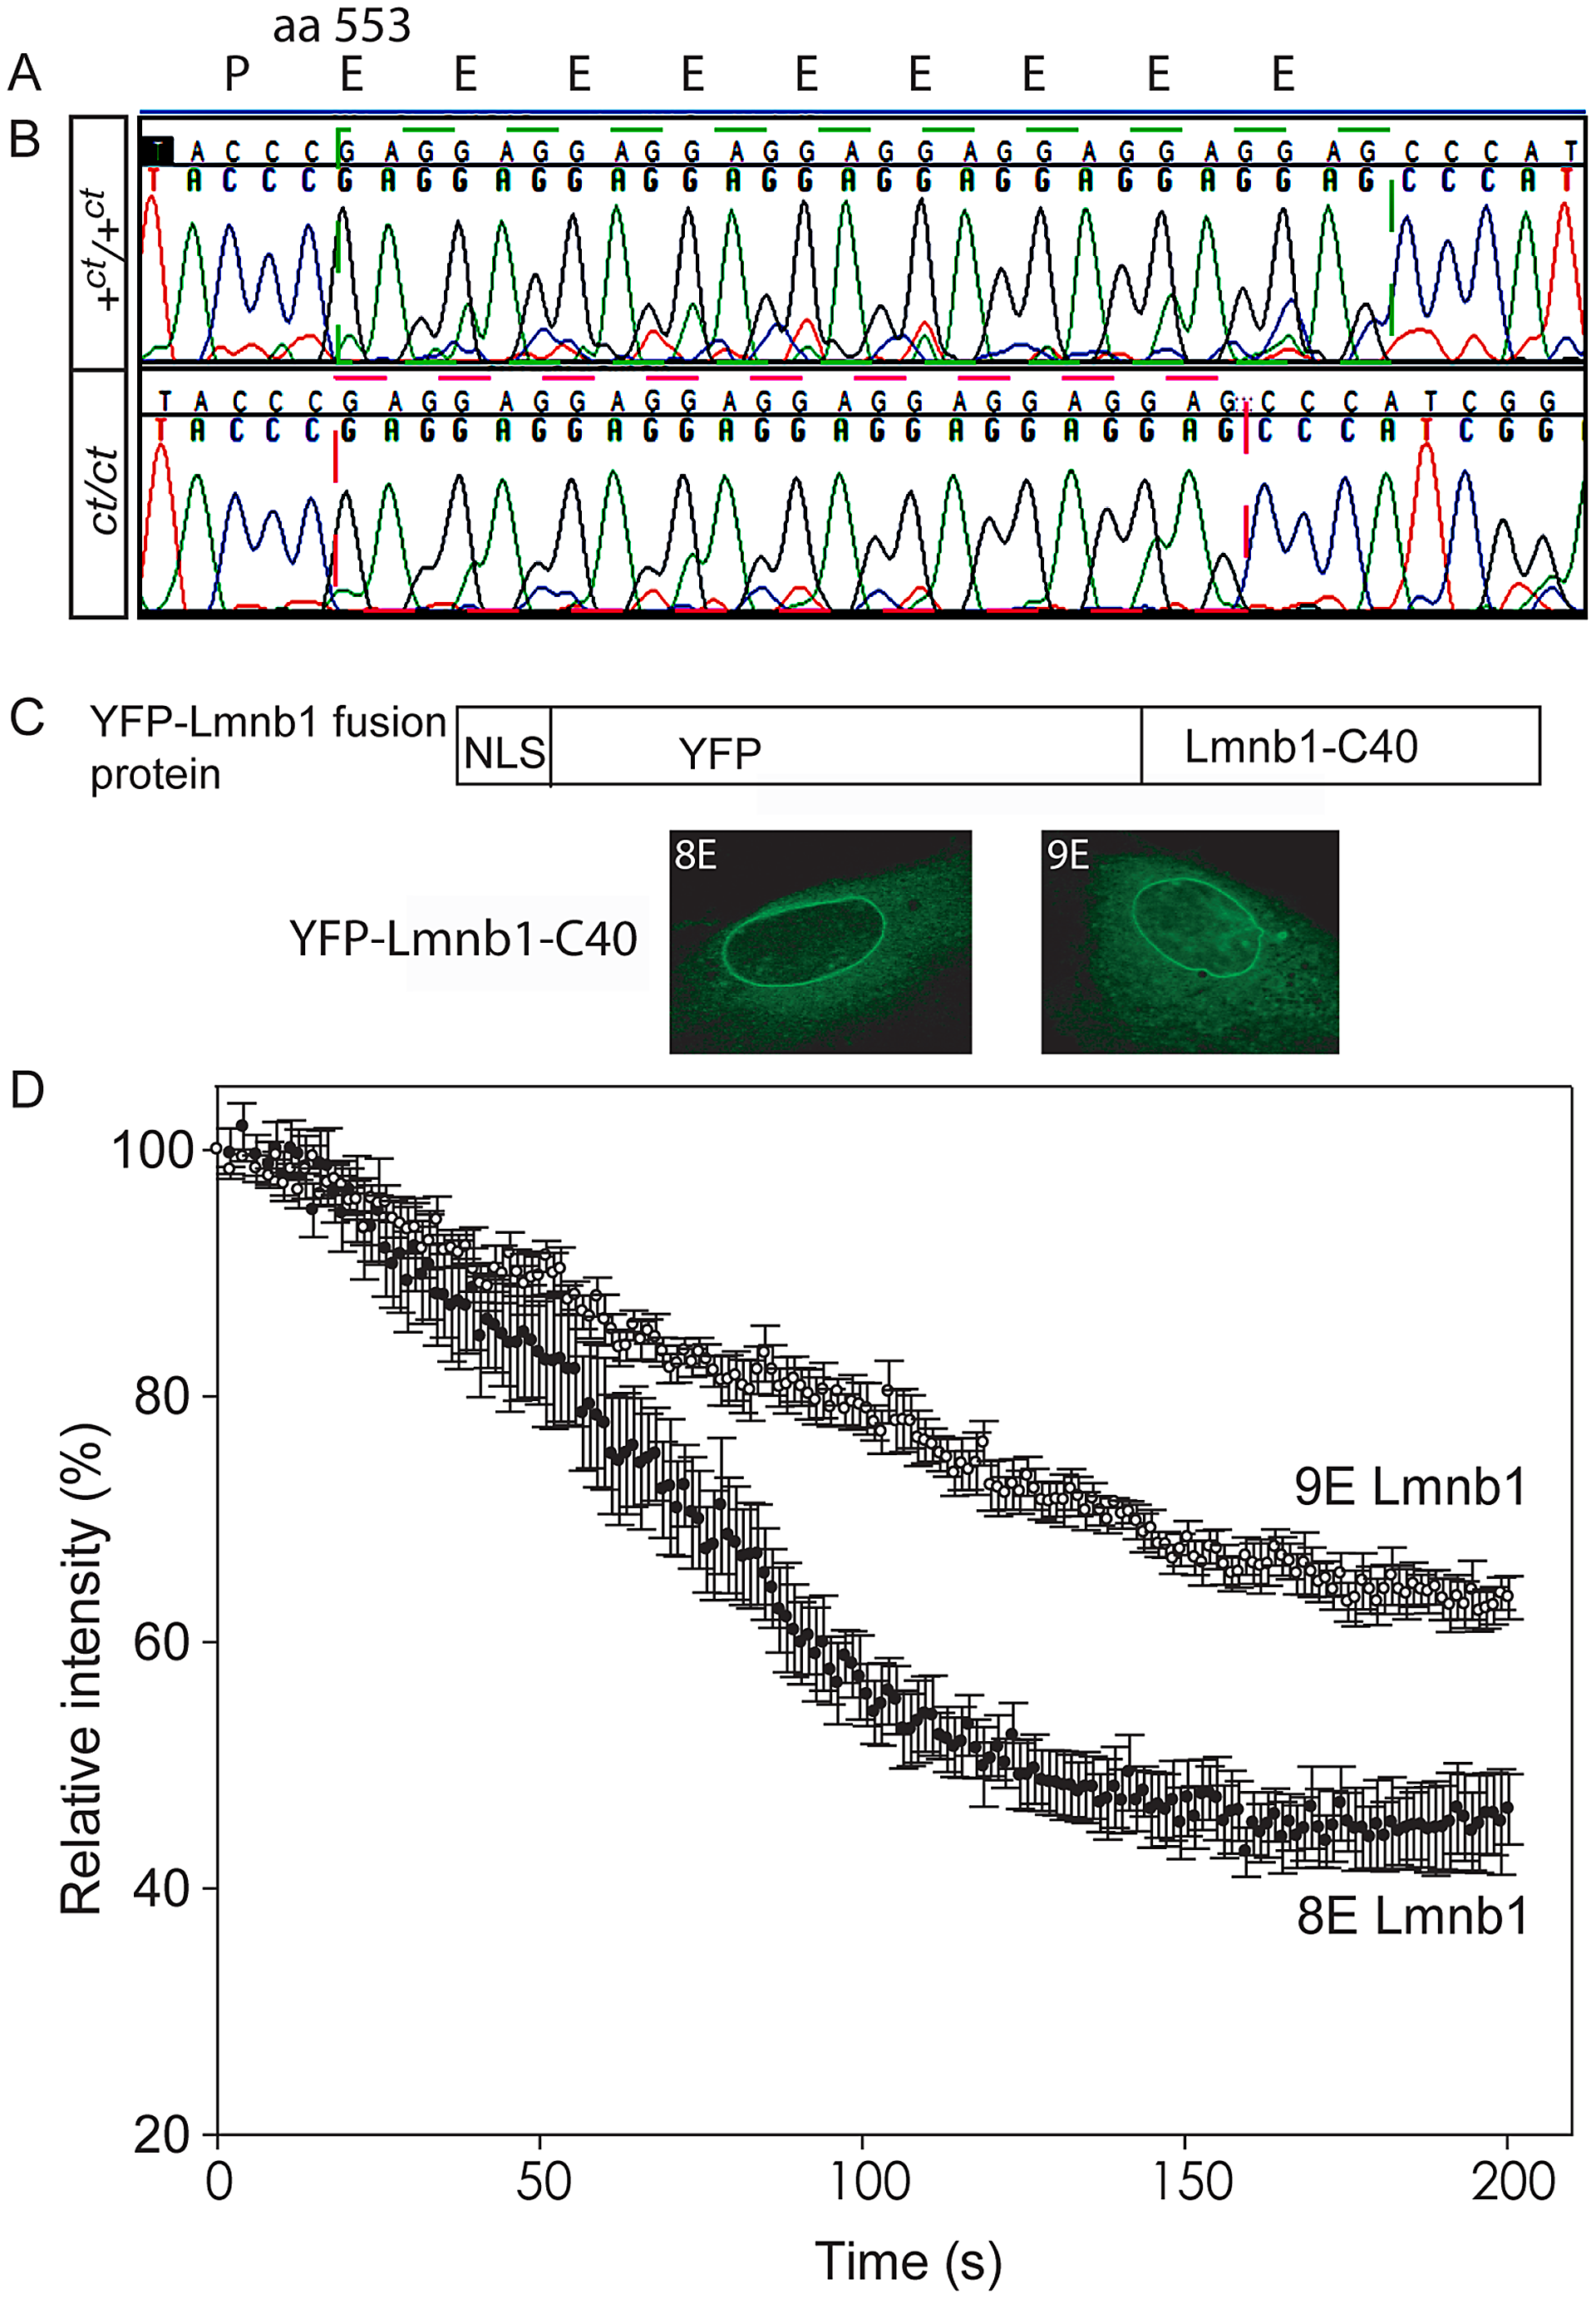 Lamin B1 shows variation in length of glutamic acid repeat, which significantly affects mobility within the nuclear envelope.